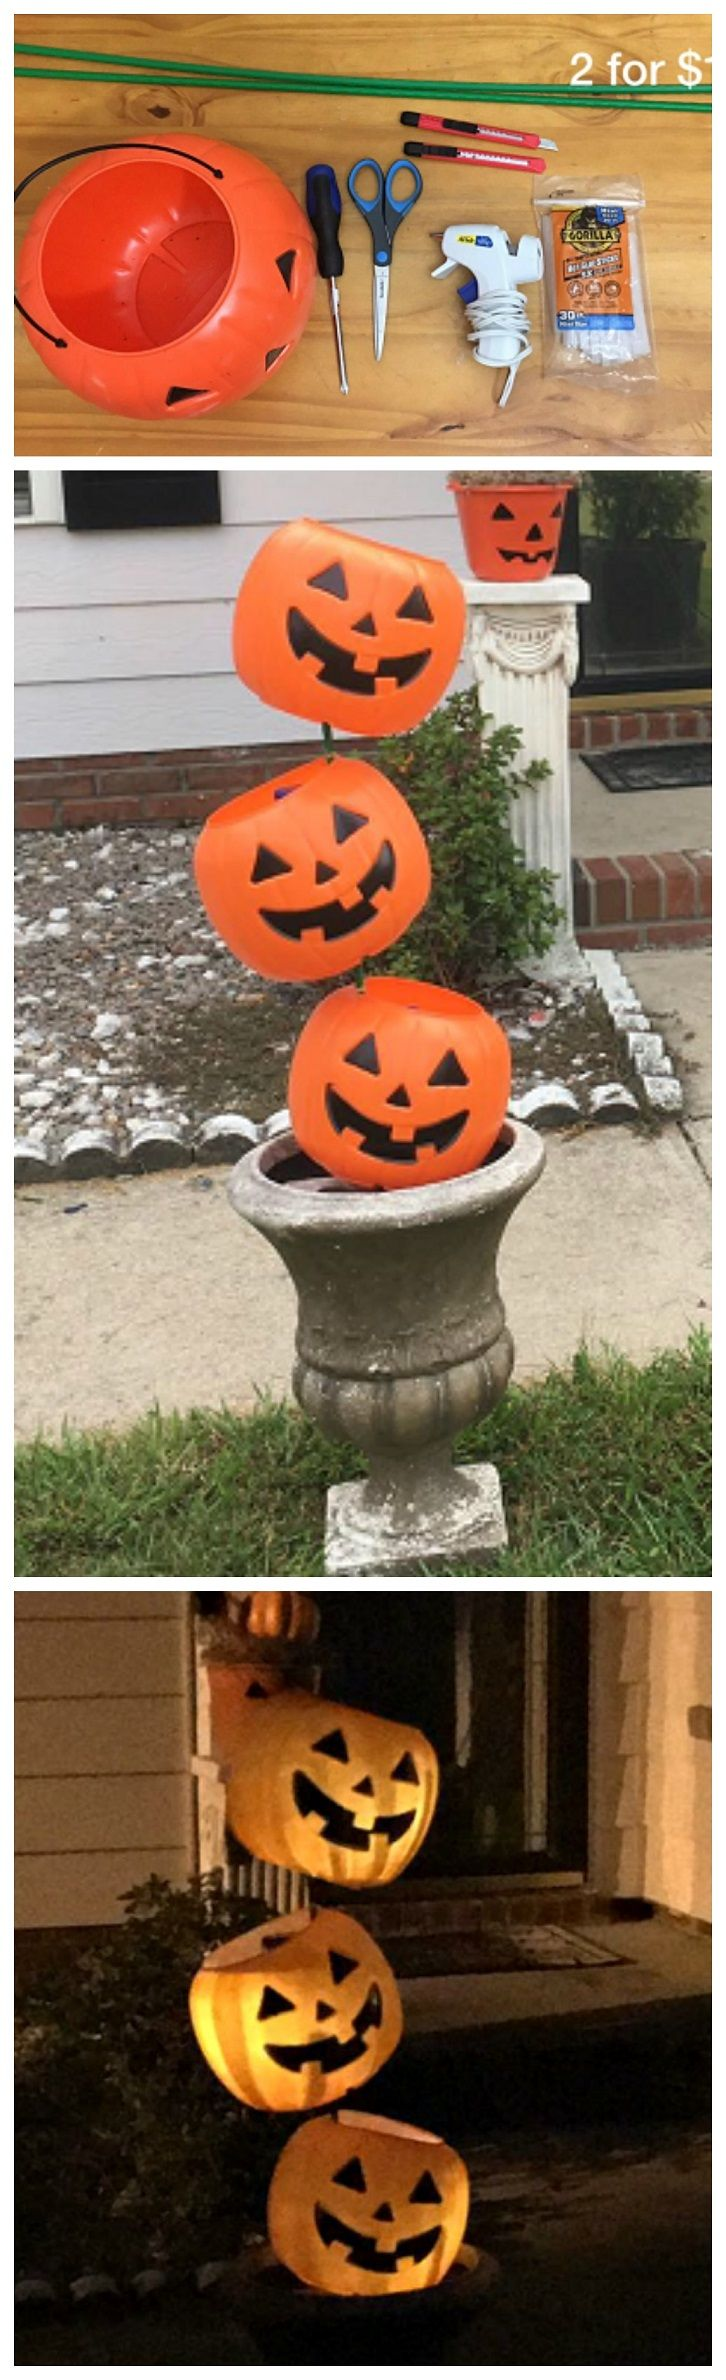 make a plastic pumpkin pail tipsy decoration for halloween such a cheap and easy craft - Cheap Do It Yourself Halloween Decorations